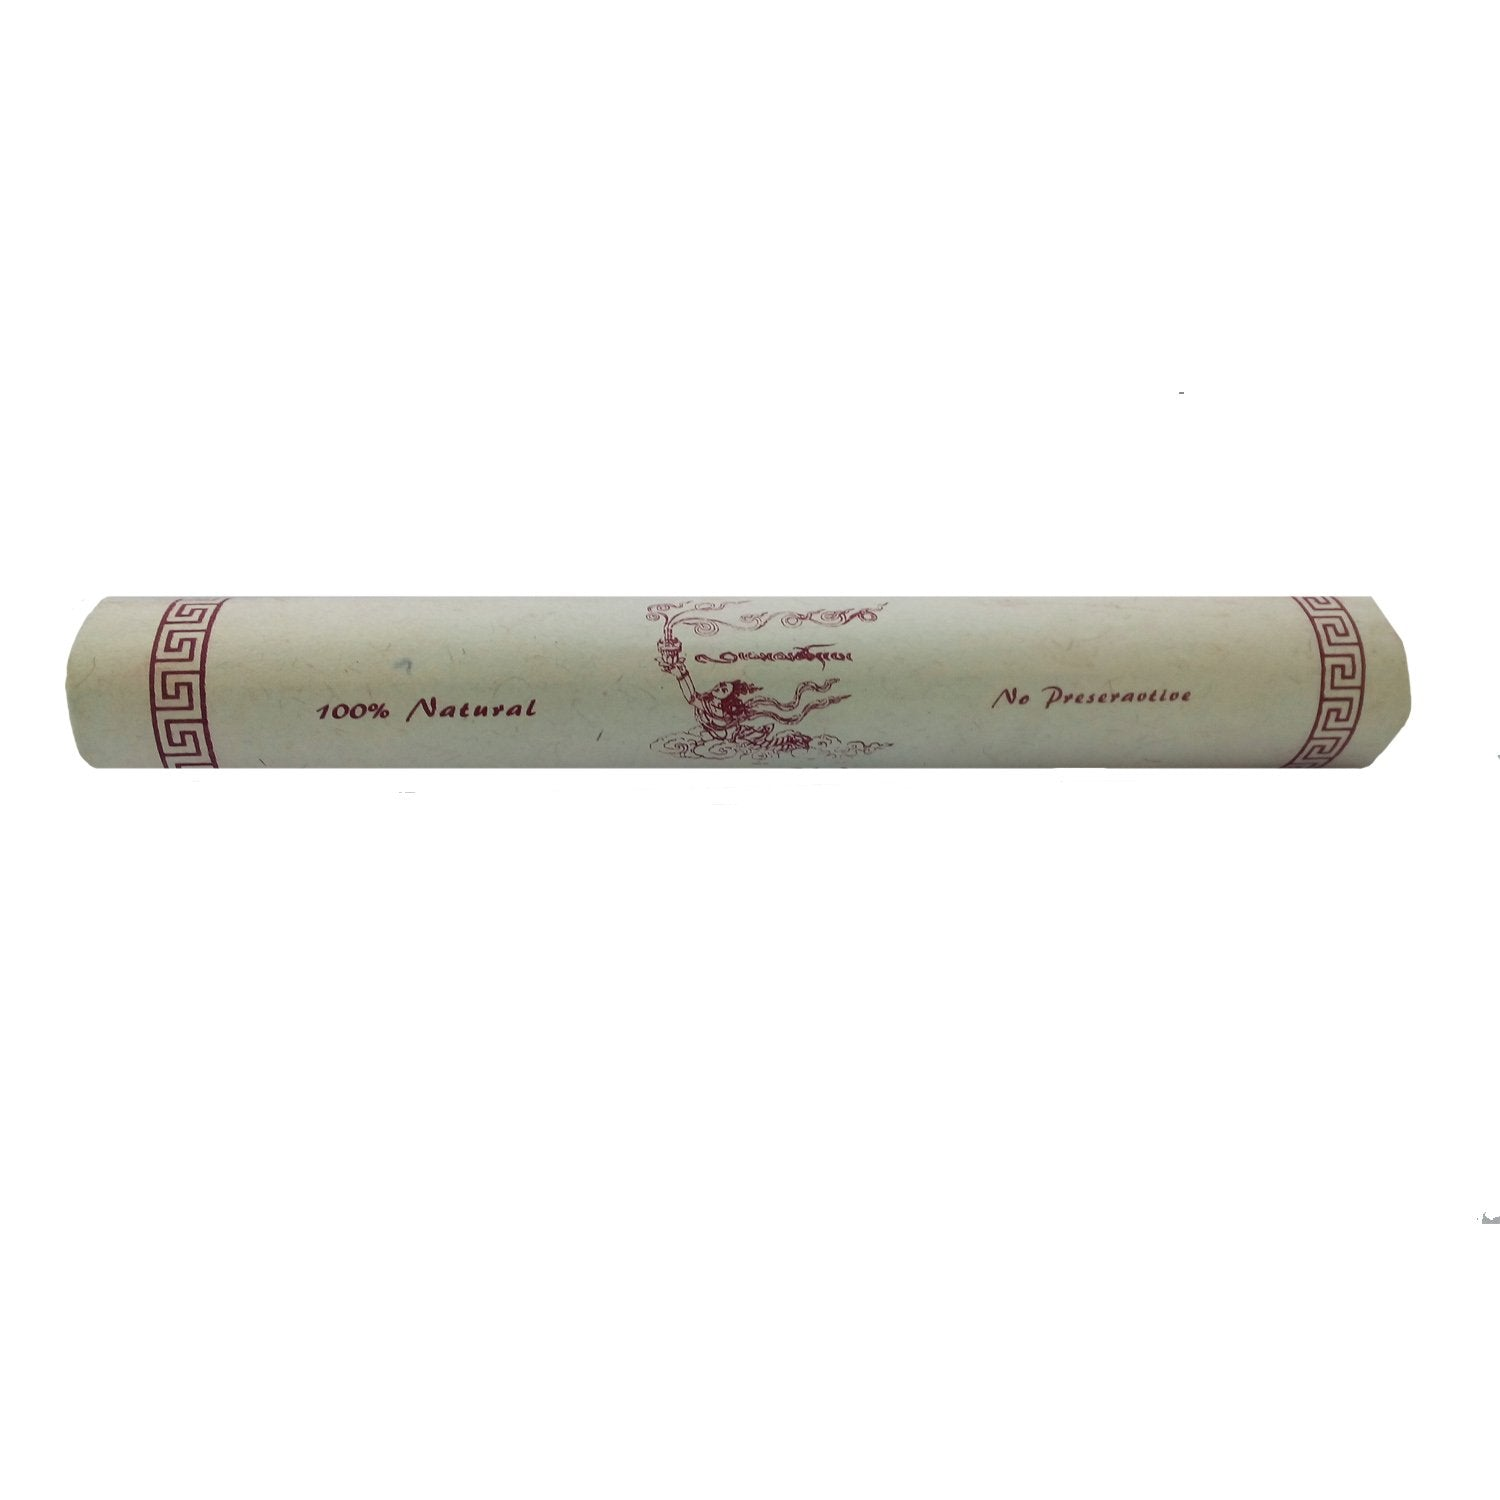 Tibetan Monastery Medium Incense Sticks For Meditation - Bagaholics Gift